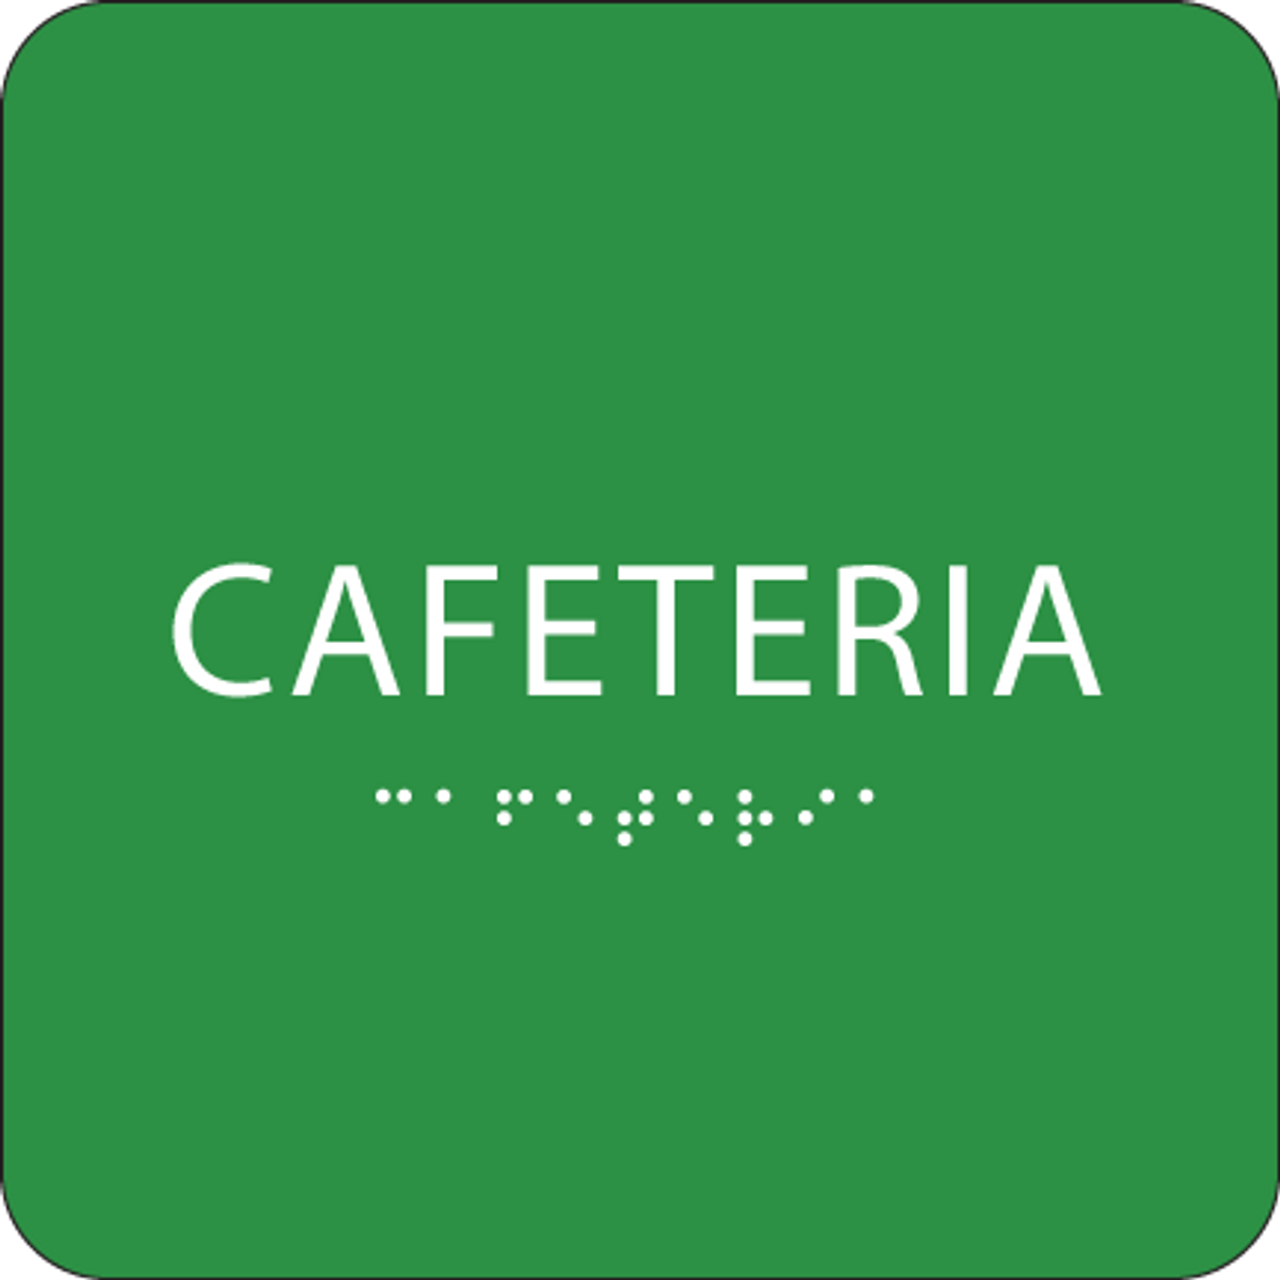 Green Cafeteria Tactile Sign